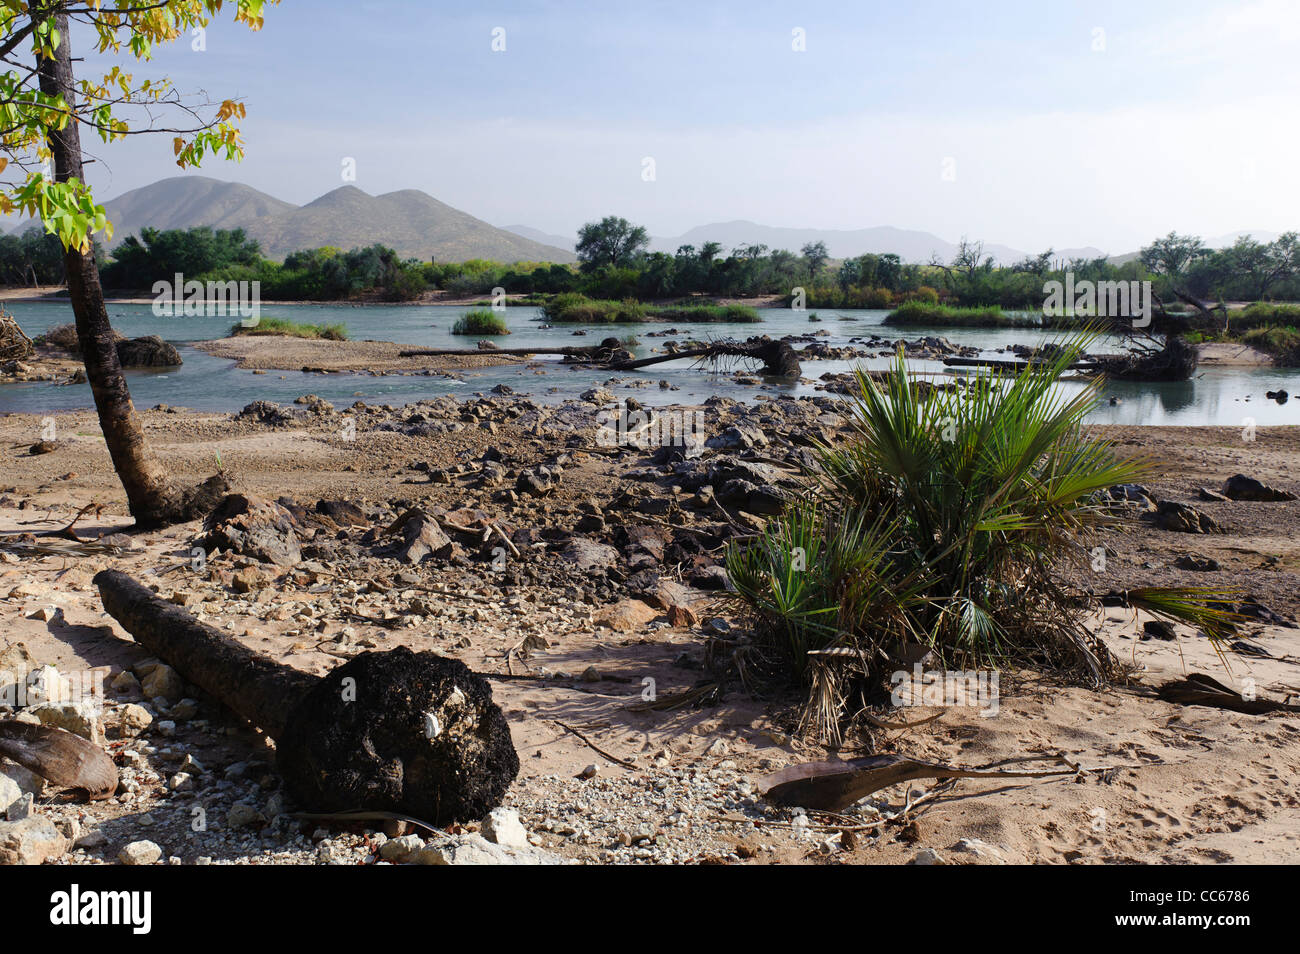 The Kunene river, the border between Namibia and Angola. Seen from the Namibian side. - Stock Image